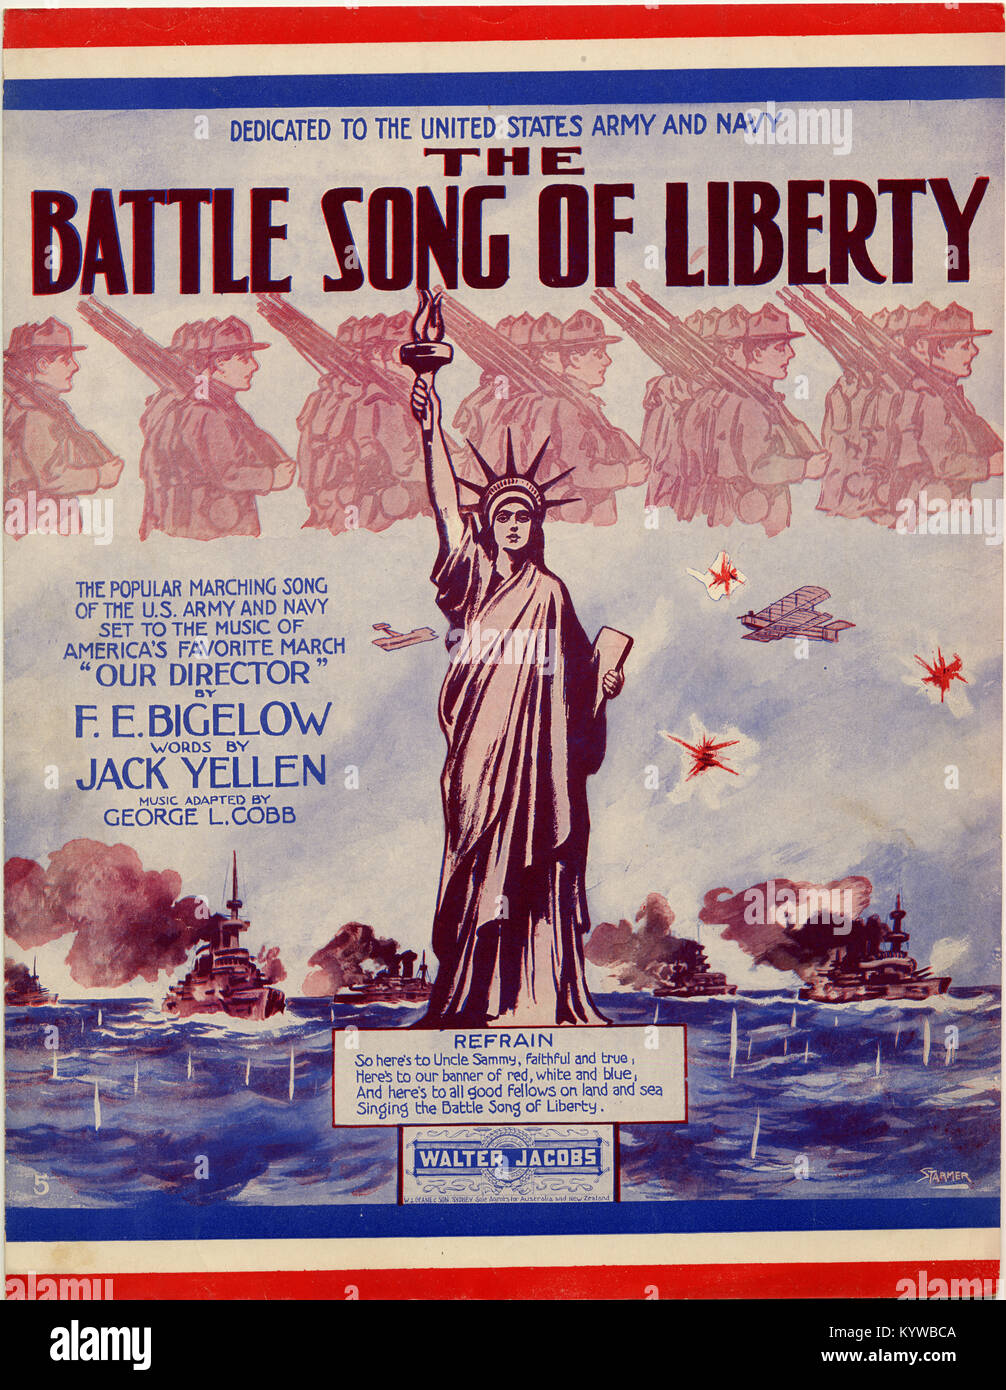 a song of liberty